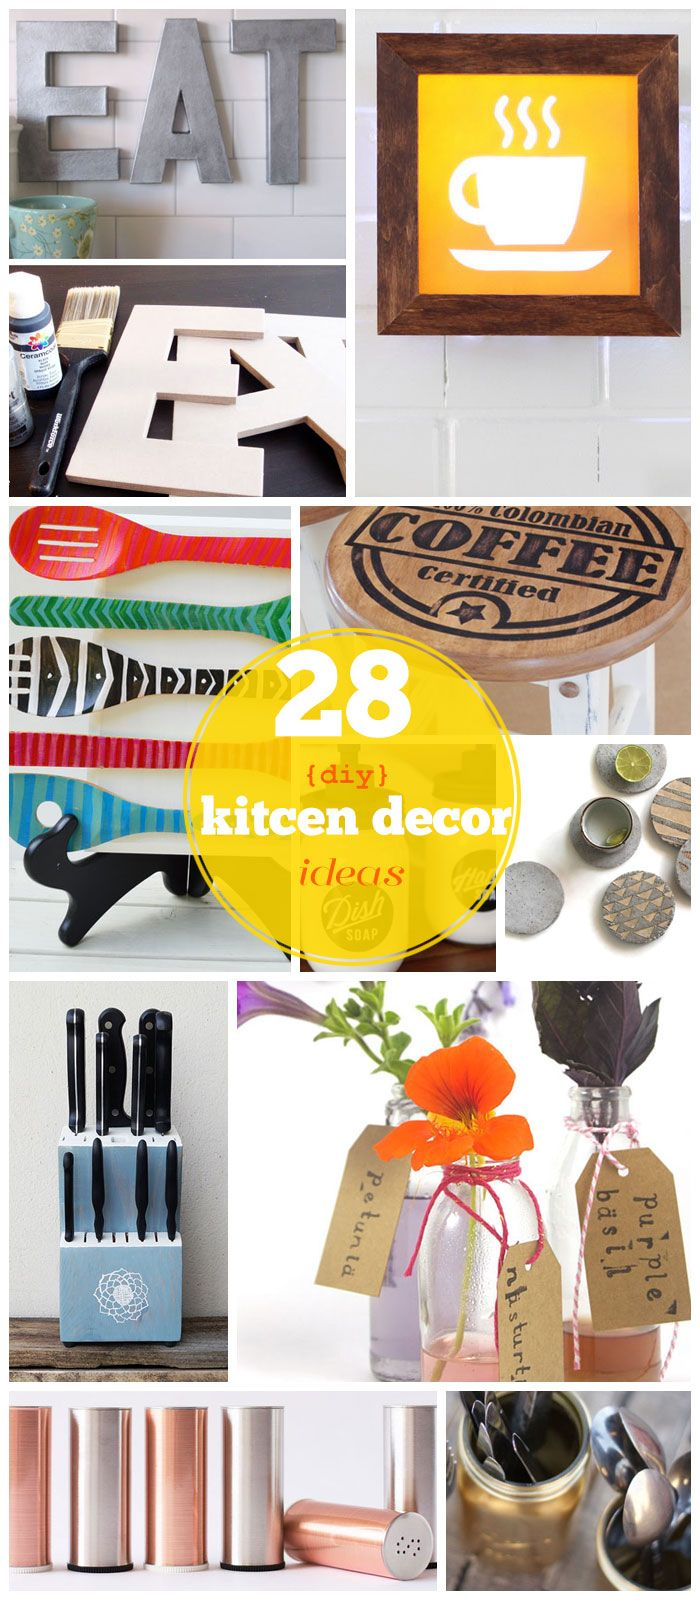 Click Pic for 28 DIY Kitchen Decorating Ideas on a Budget | DIY Home Decorating on a Budget